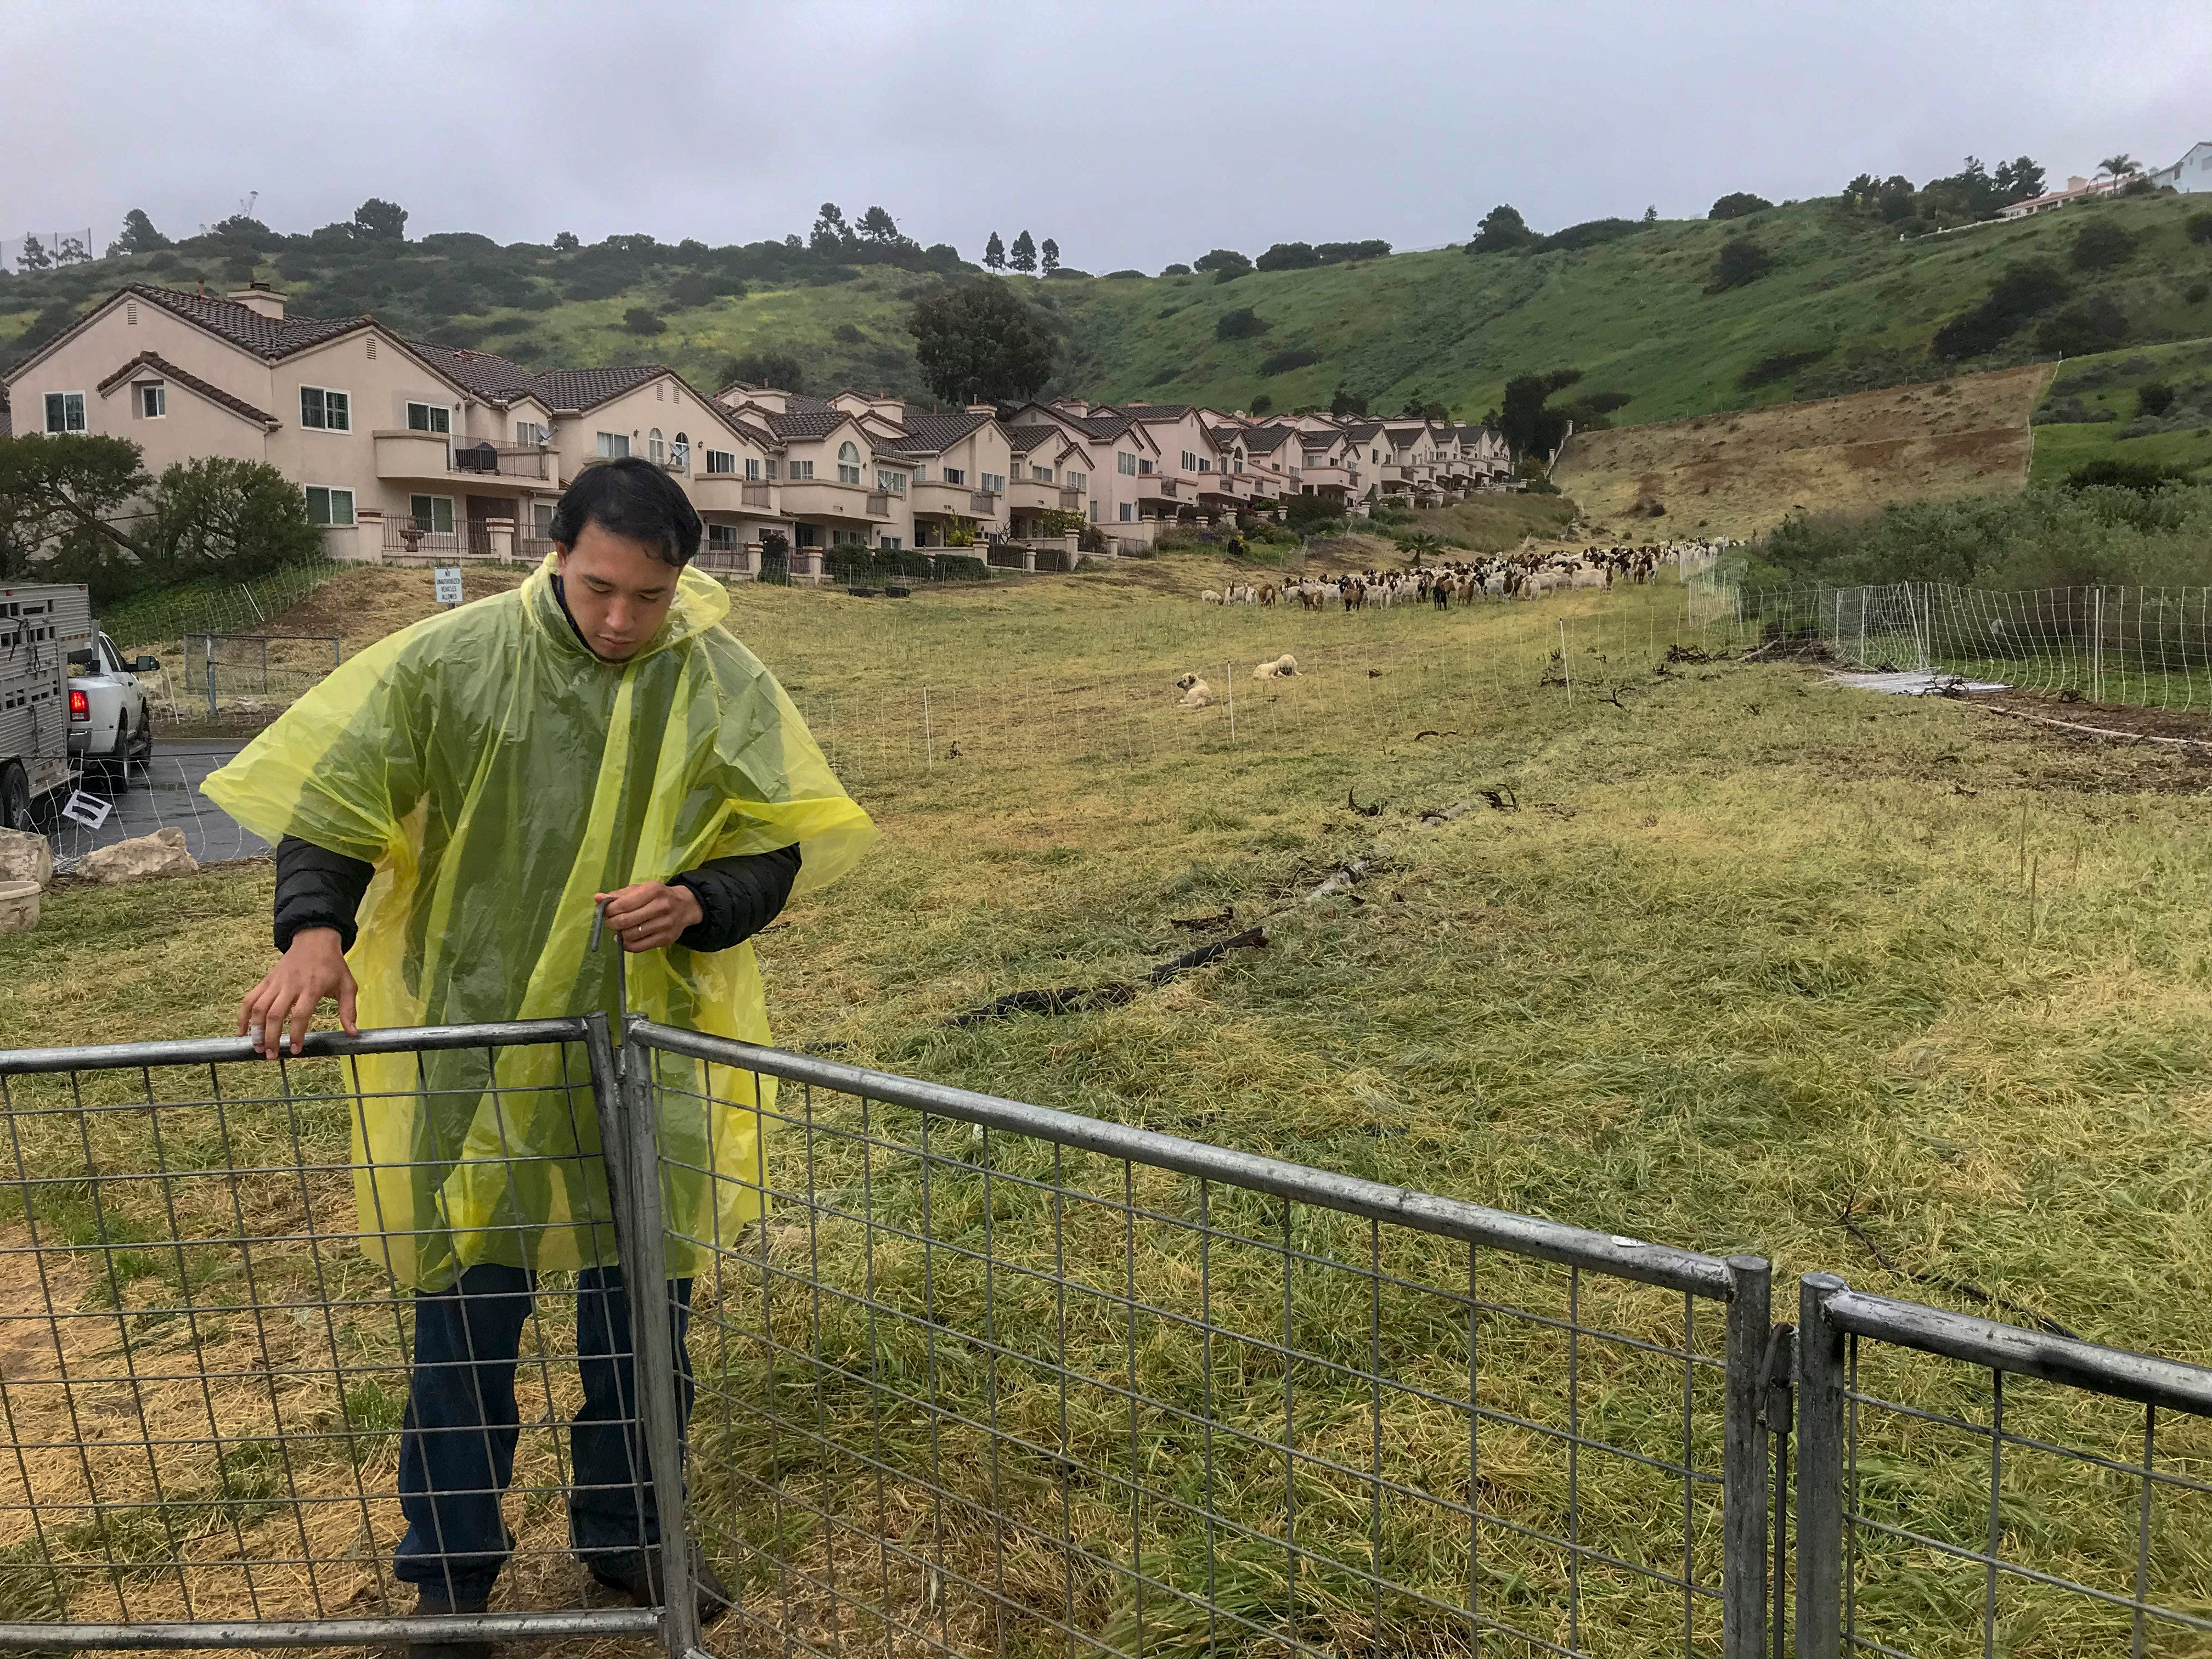 Michael Choi, the owner of Fire Grazers Inc., adjusts a goat pen in Rancho Palos Verdes on a rainy day in March. The city paid Choi $100,000 for his goats to eat vegetation on about 60 acres over the course of three months. The goats reduce fire risks around homes.